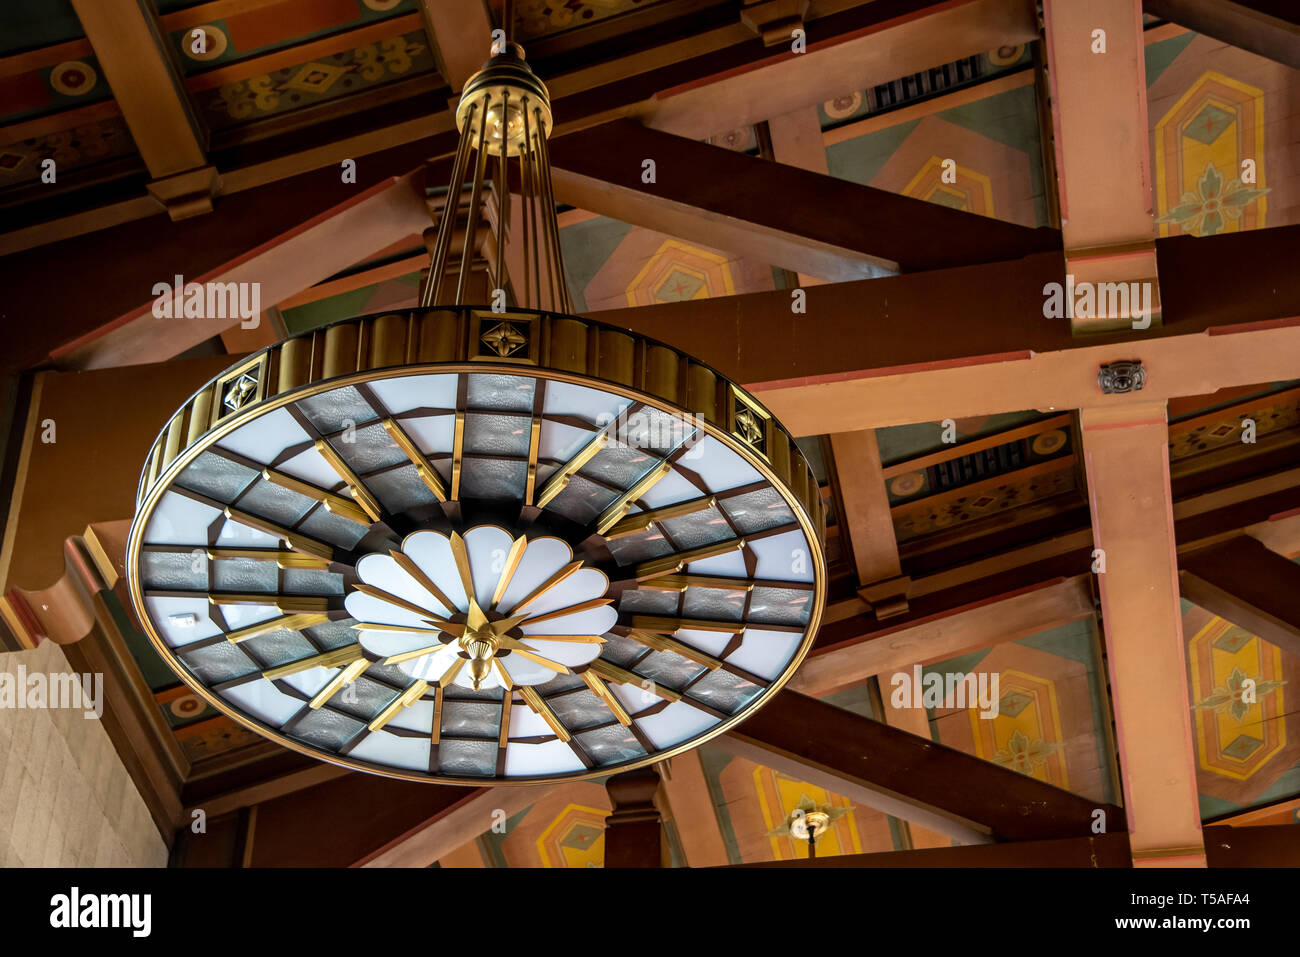 Close up of brass Art Deco light fixture in Los Angeles Union Station, train station, with details of Mission Revival painted ceiling and beams. - Stock Image